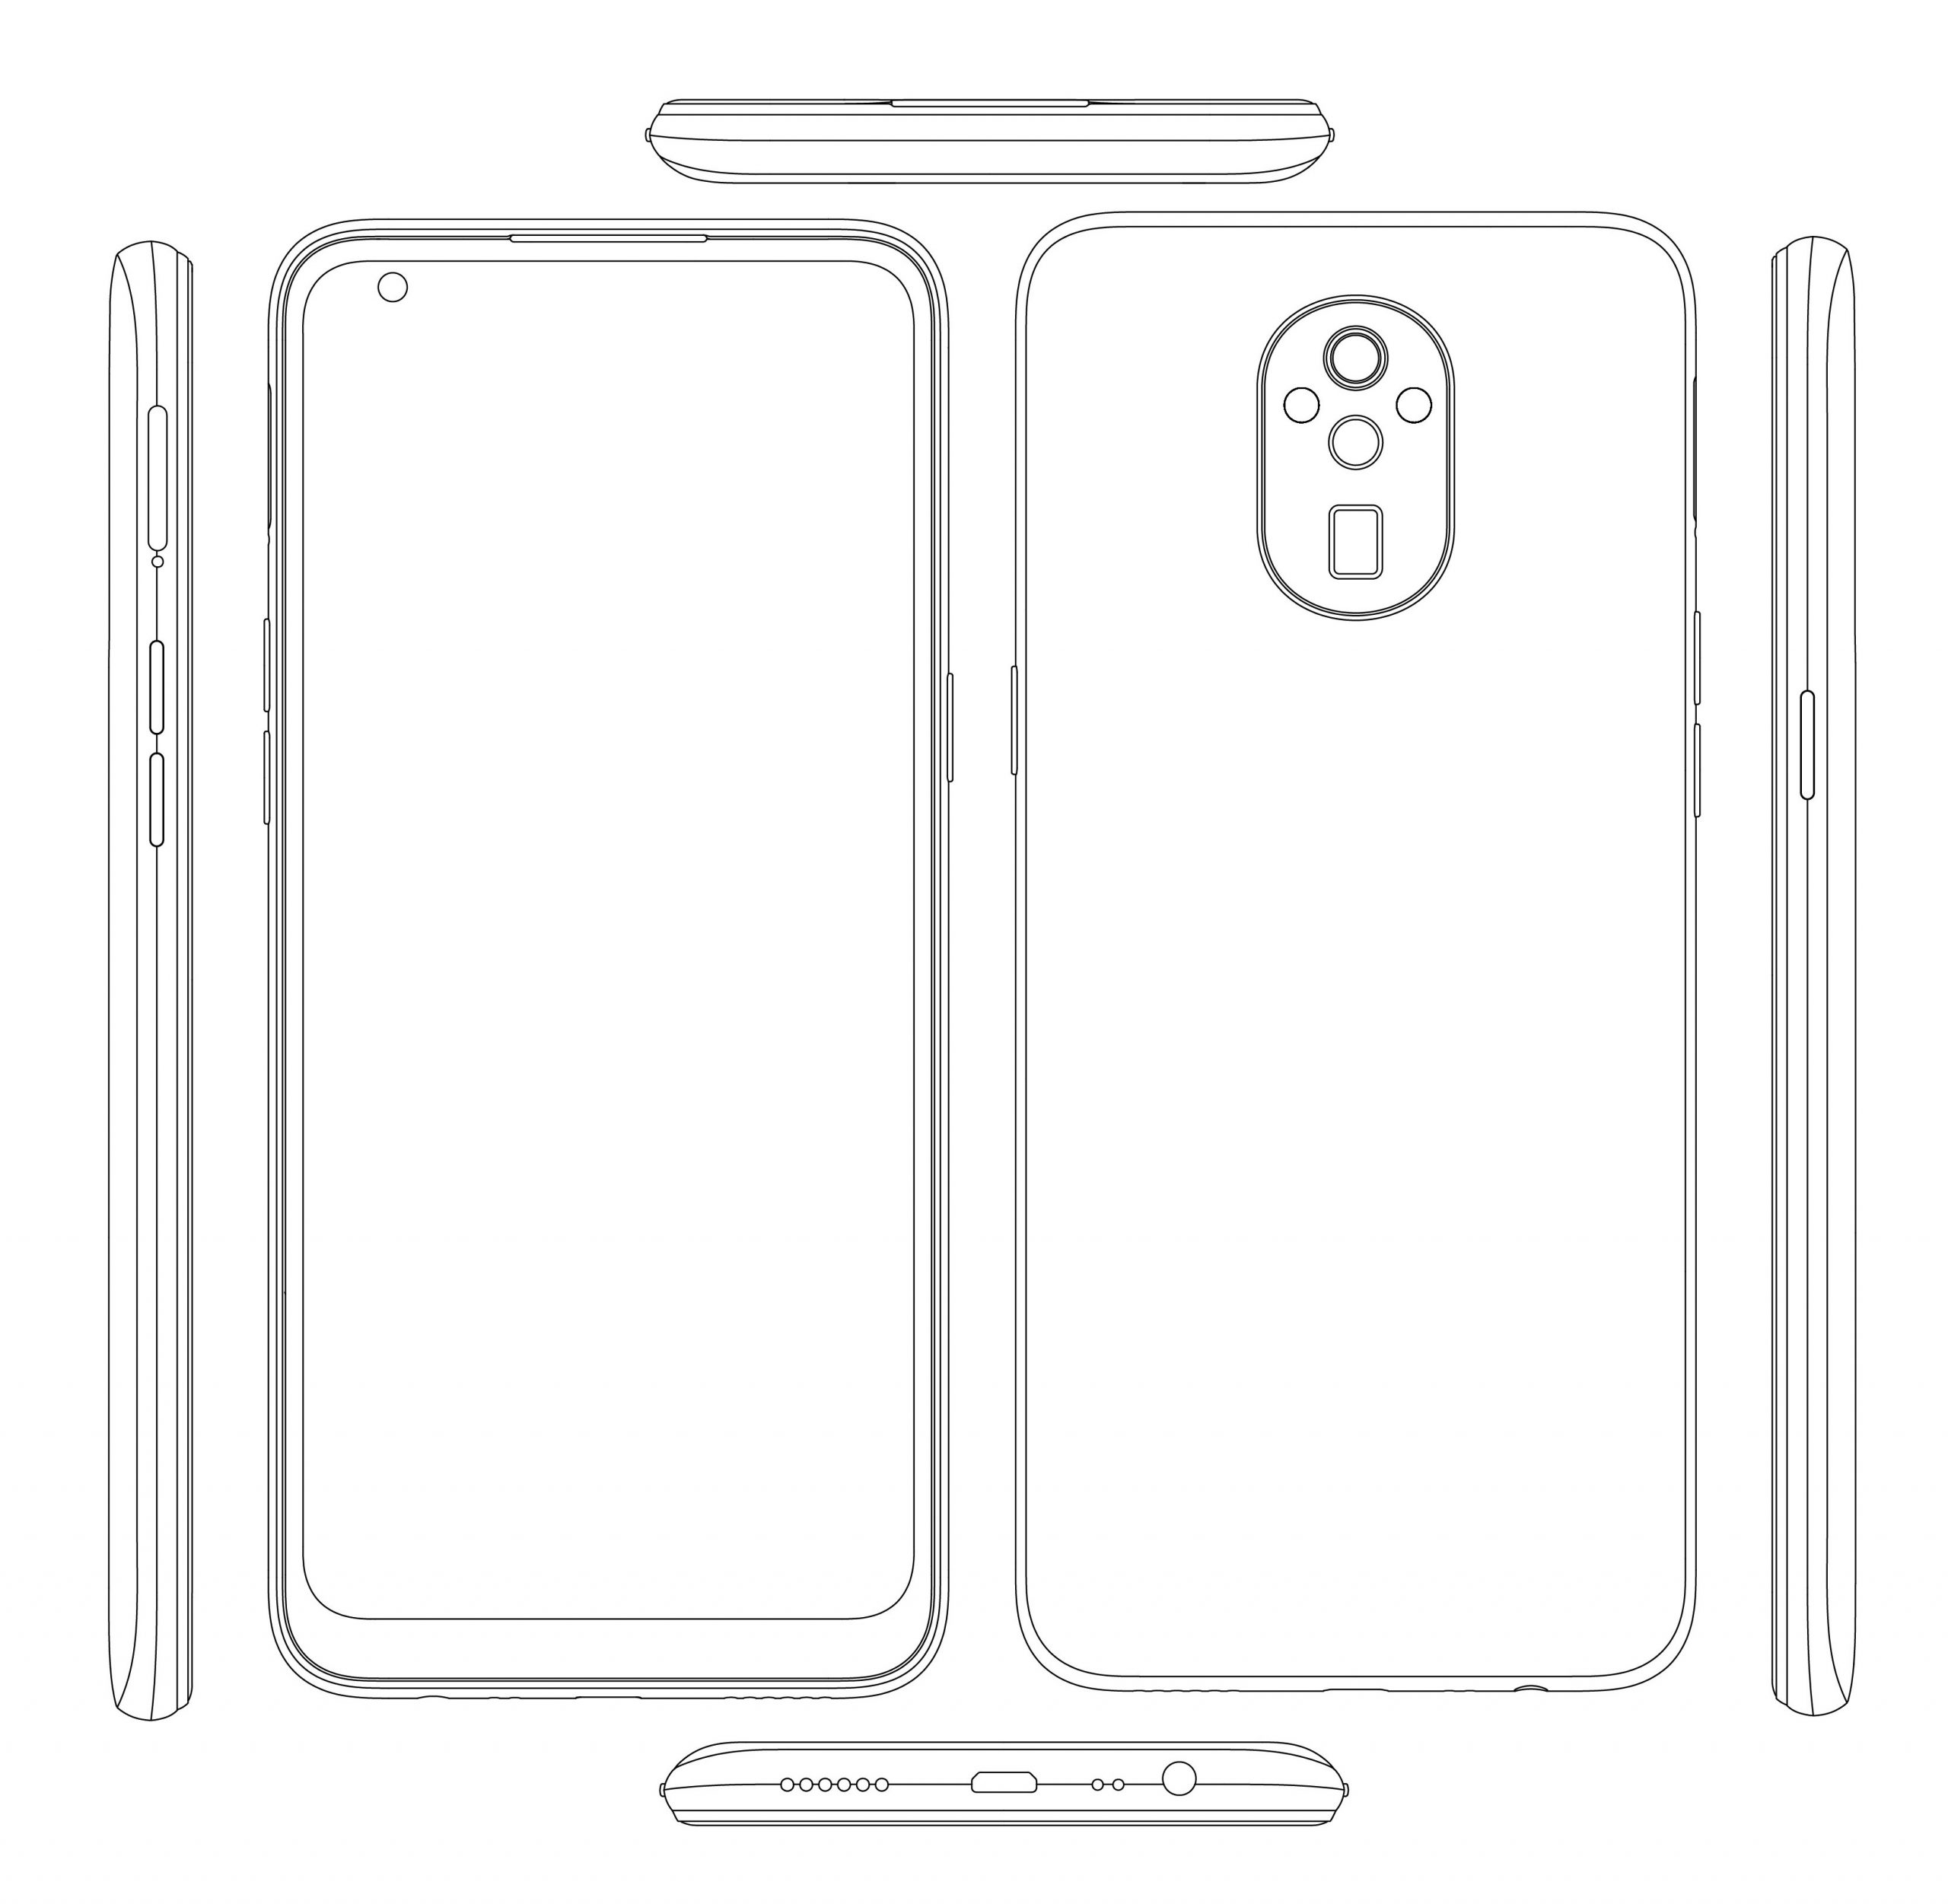 Realme patents Triple rear cameras with Periscope Lens